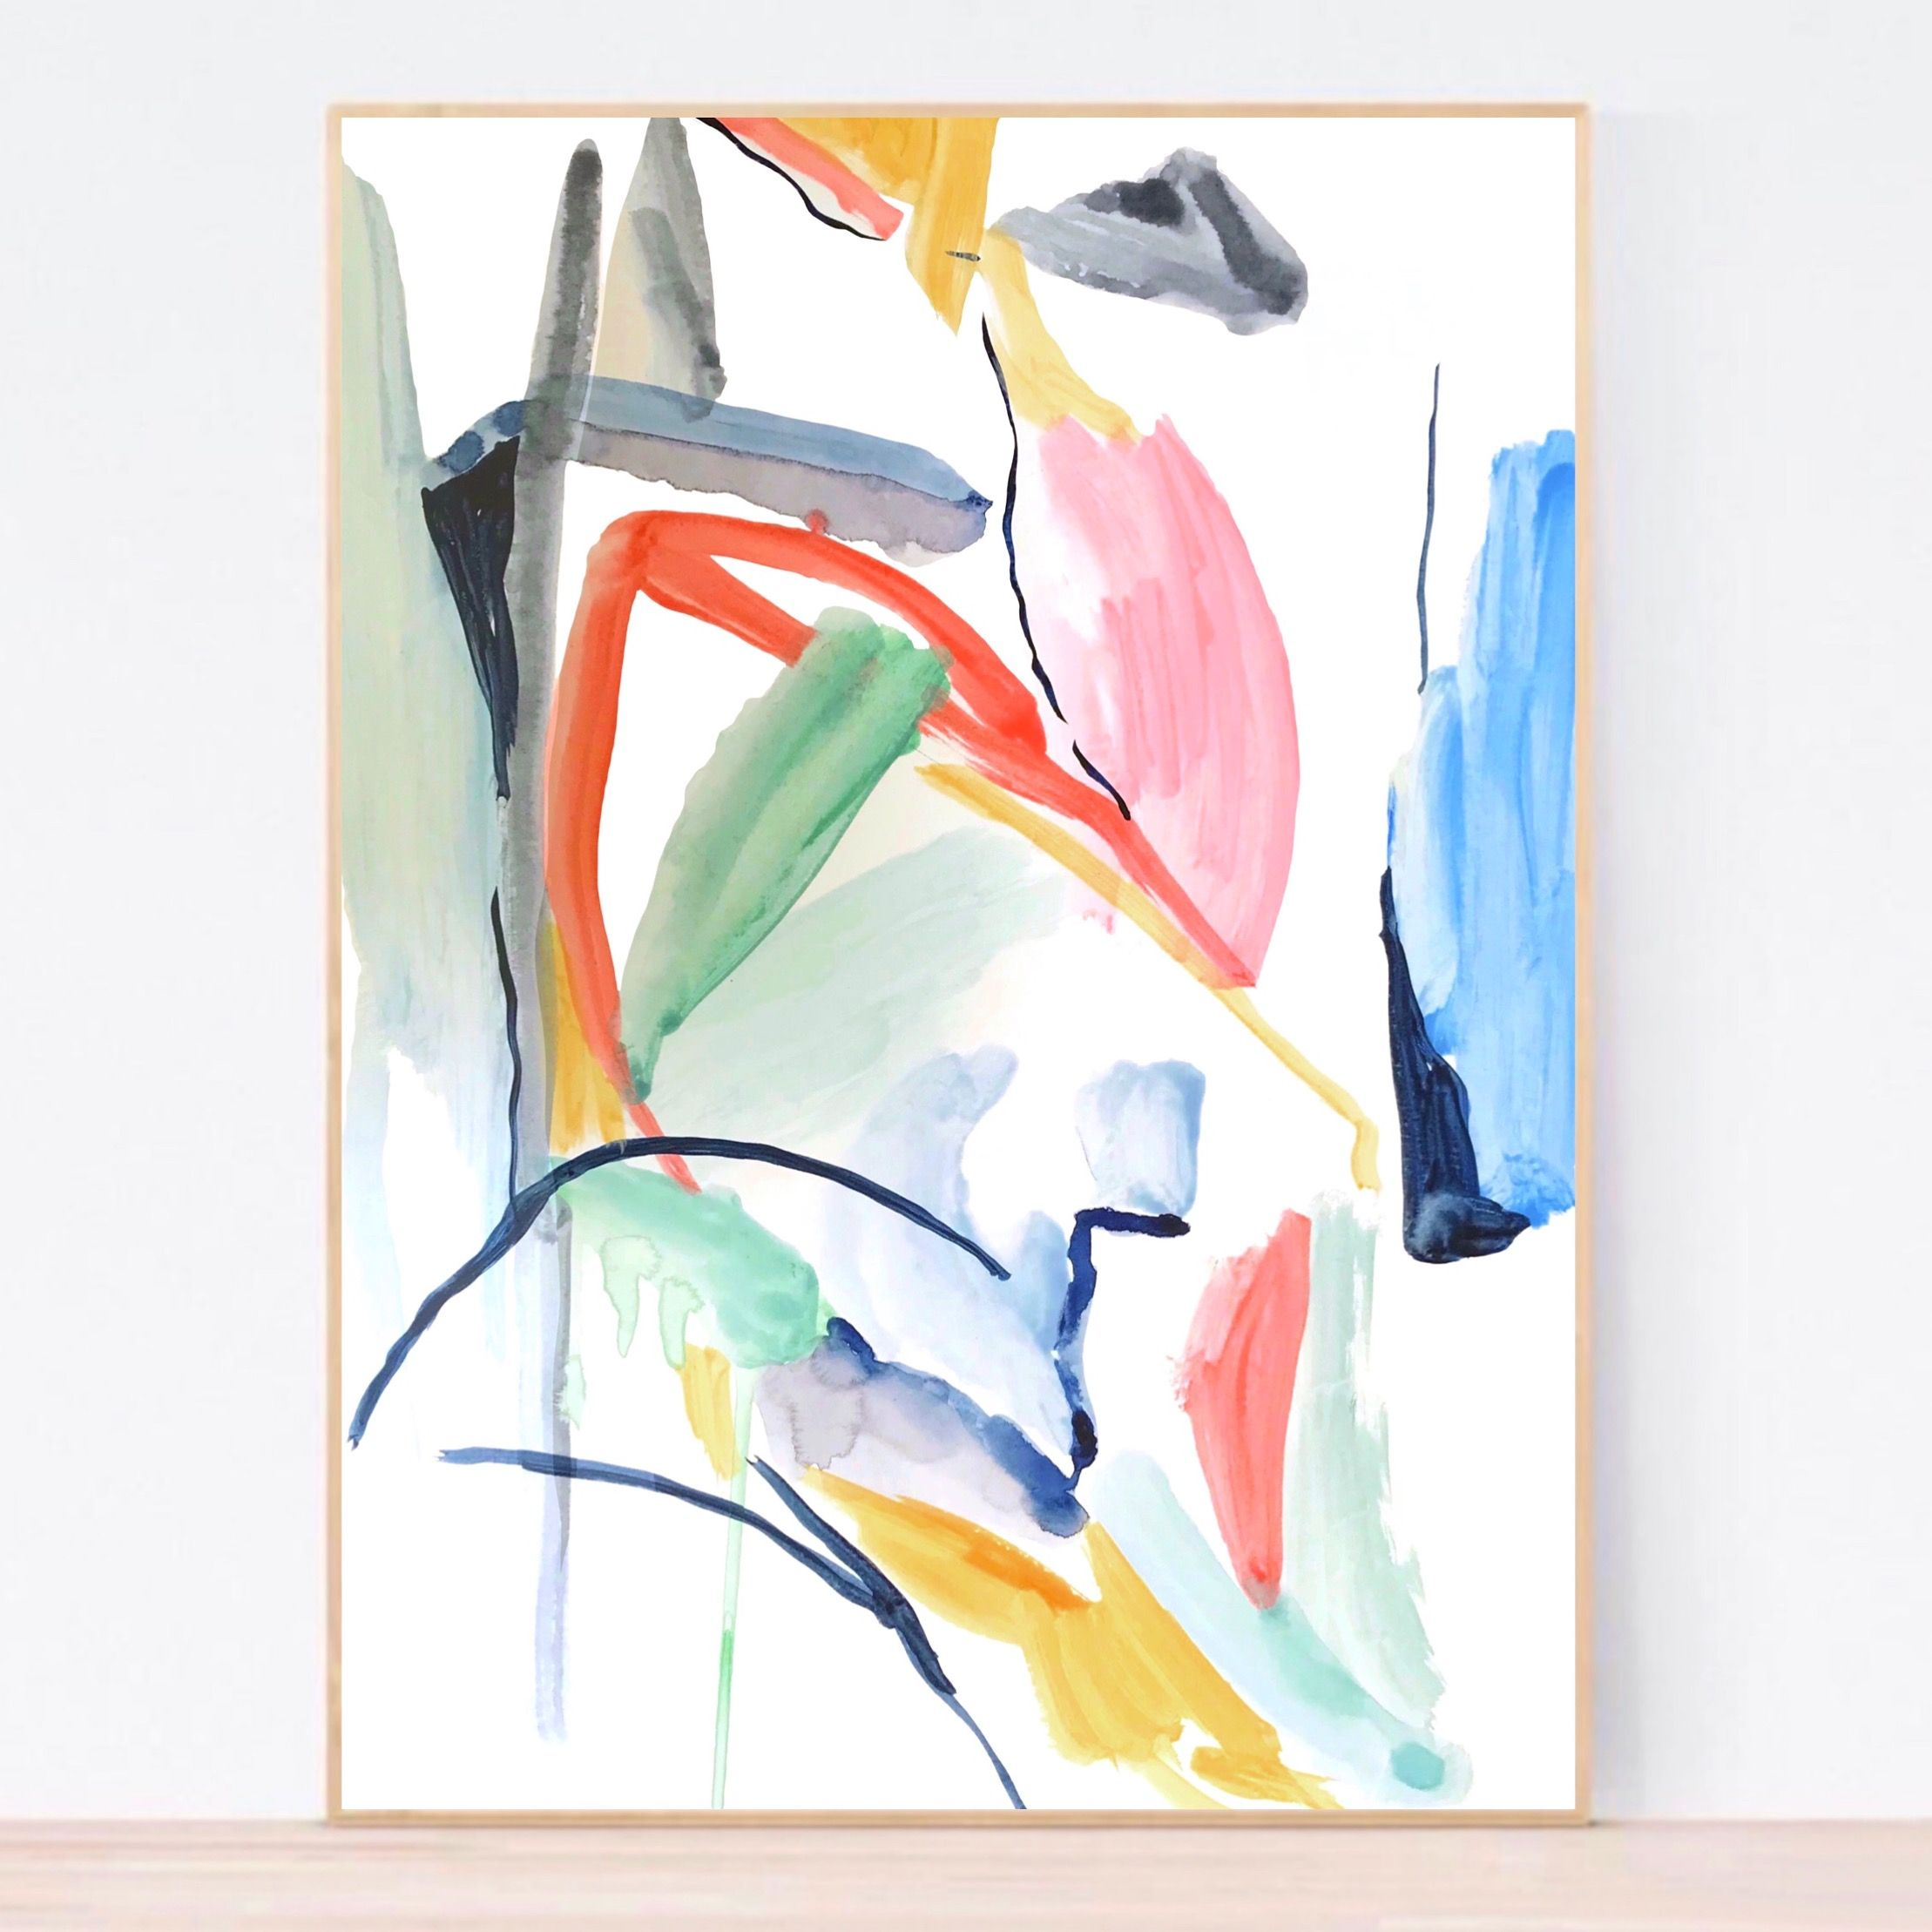 Formation Joy Watercolour Abstract Society6Dansedelune